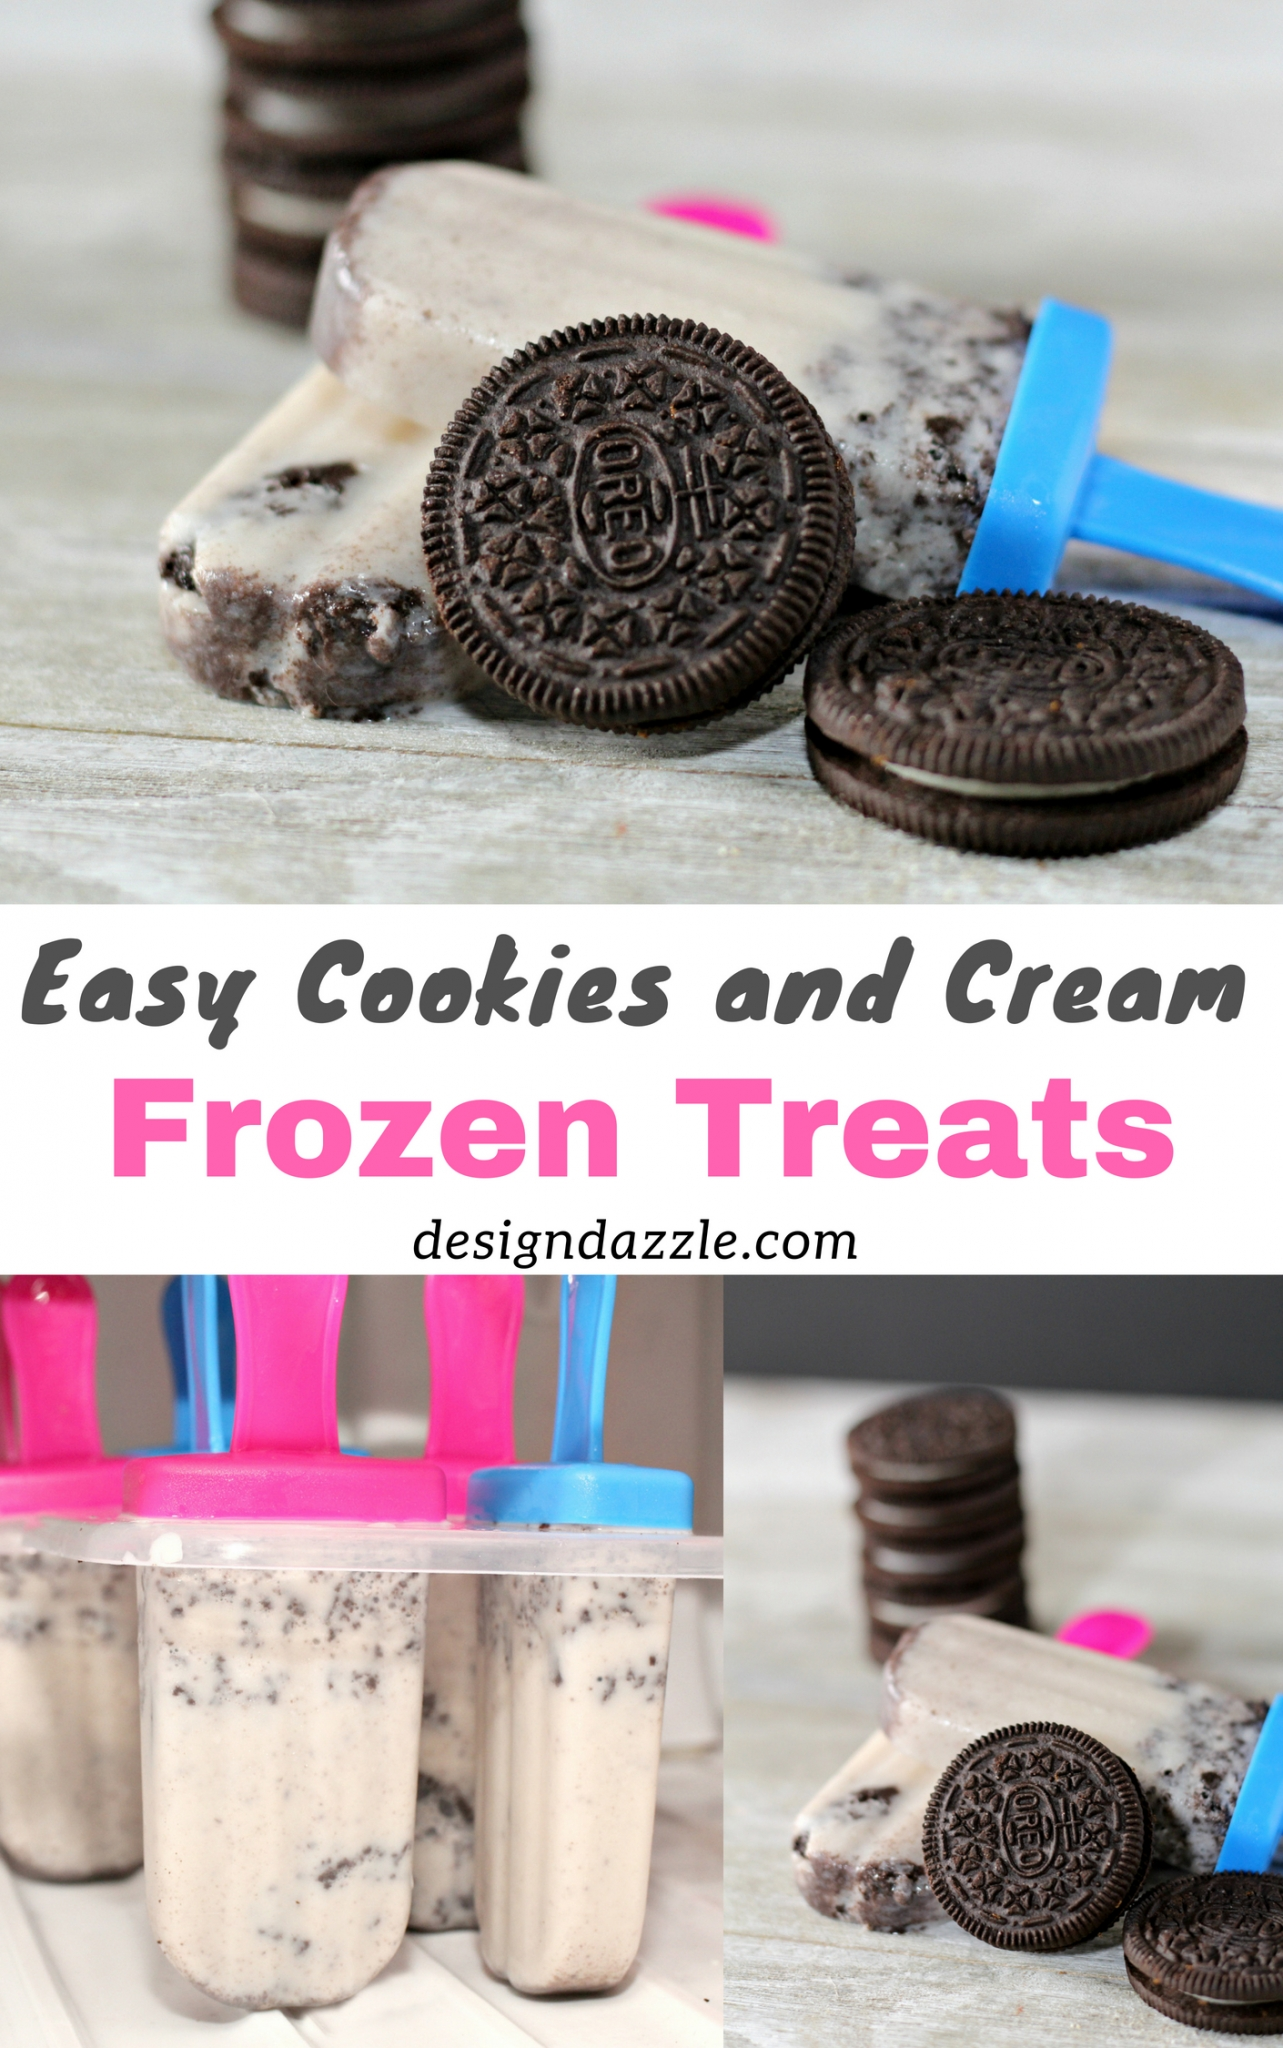 Easy Cookies and Cream Frozen Treats